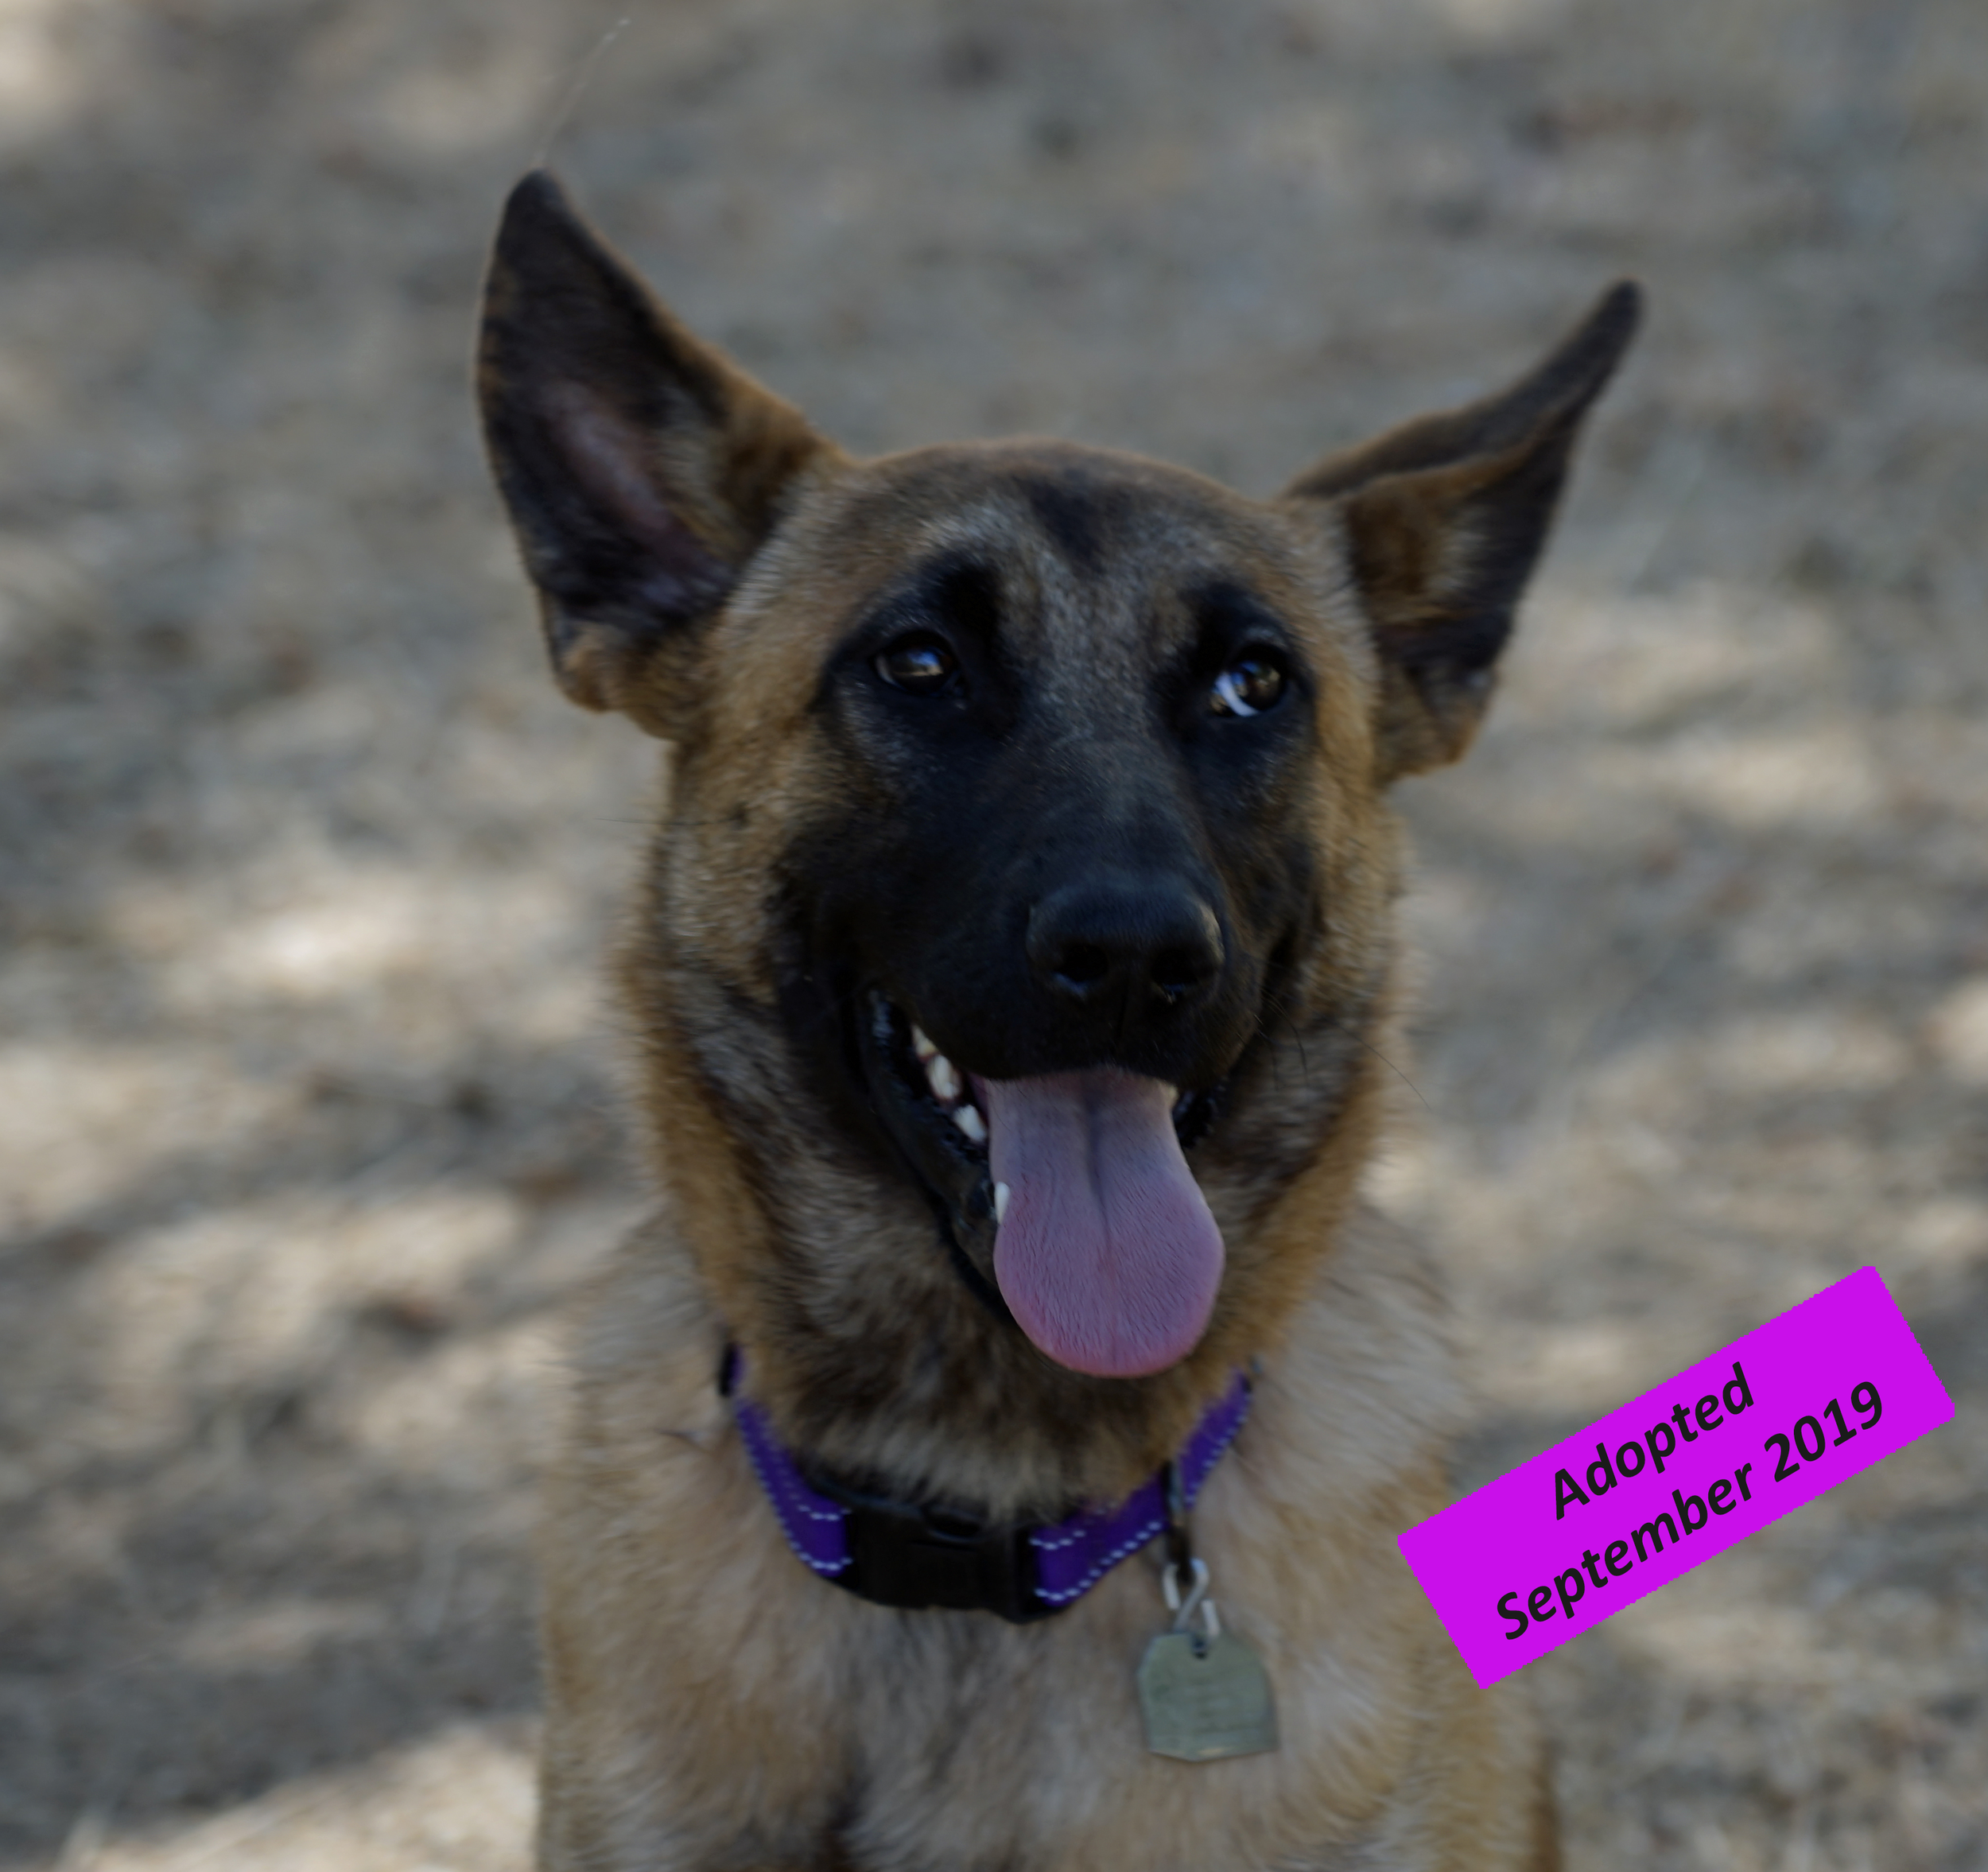 Billie - Billie came to us on May 7th 2019 from Kern County Animal Services. At just about 18 months old she is as sweet as can be. We believe that she is a Belgian Malinois mix. We pulled her during Give Big Kern and she is named after Billy the Give Big Goat to honor such a wonderful program hosted annually for local nonprofit organizations. Billie loves people and is getting more comfortable and confident around dogs everyday. We are working on her jumping but she is already potty trained and crate trained.